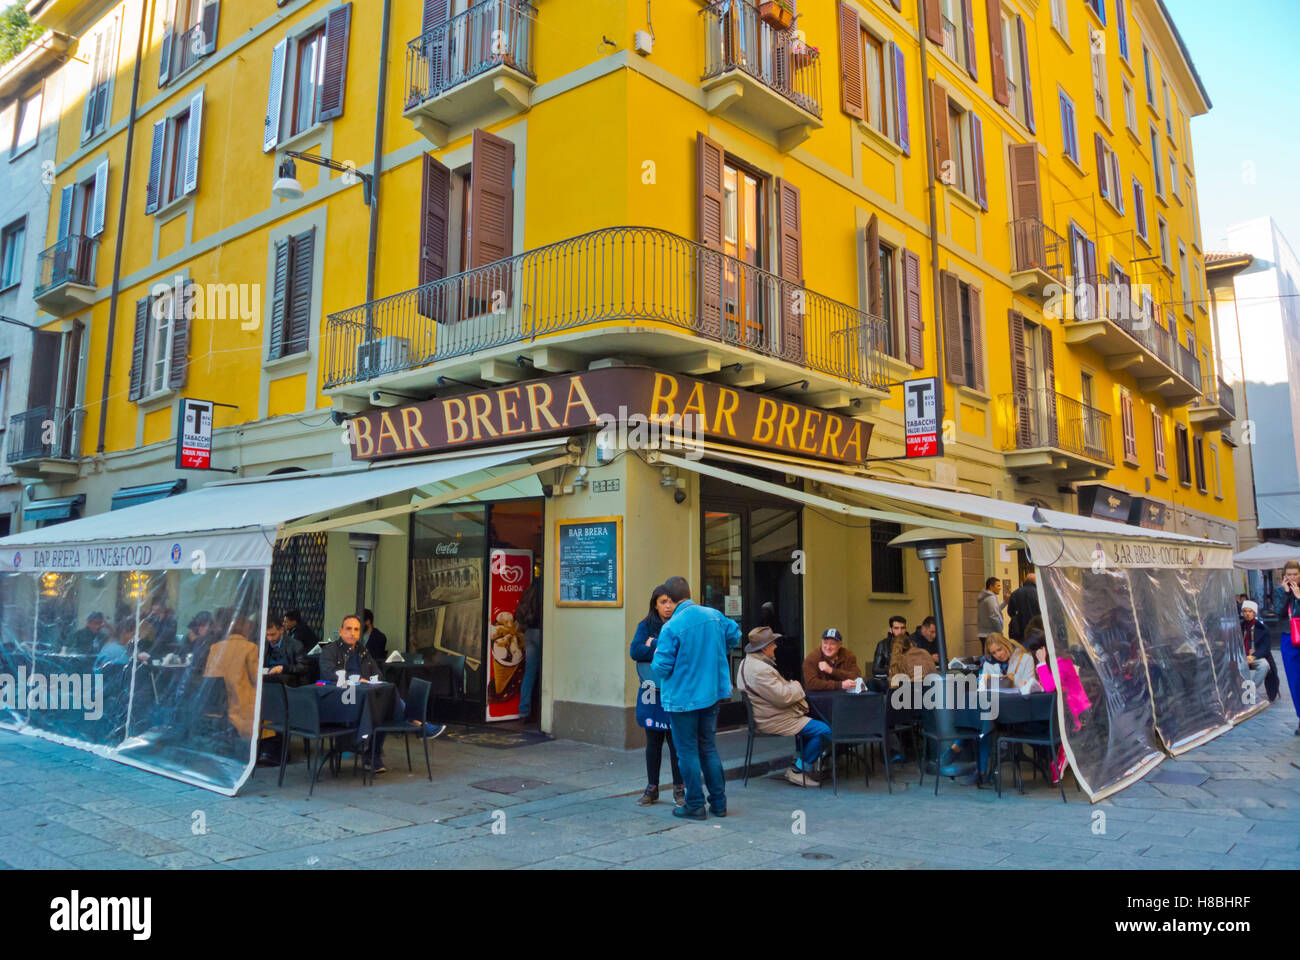 Bar Brera, Via Brera, Brera district, Milan, Lombardy, Italy - Stock Image